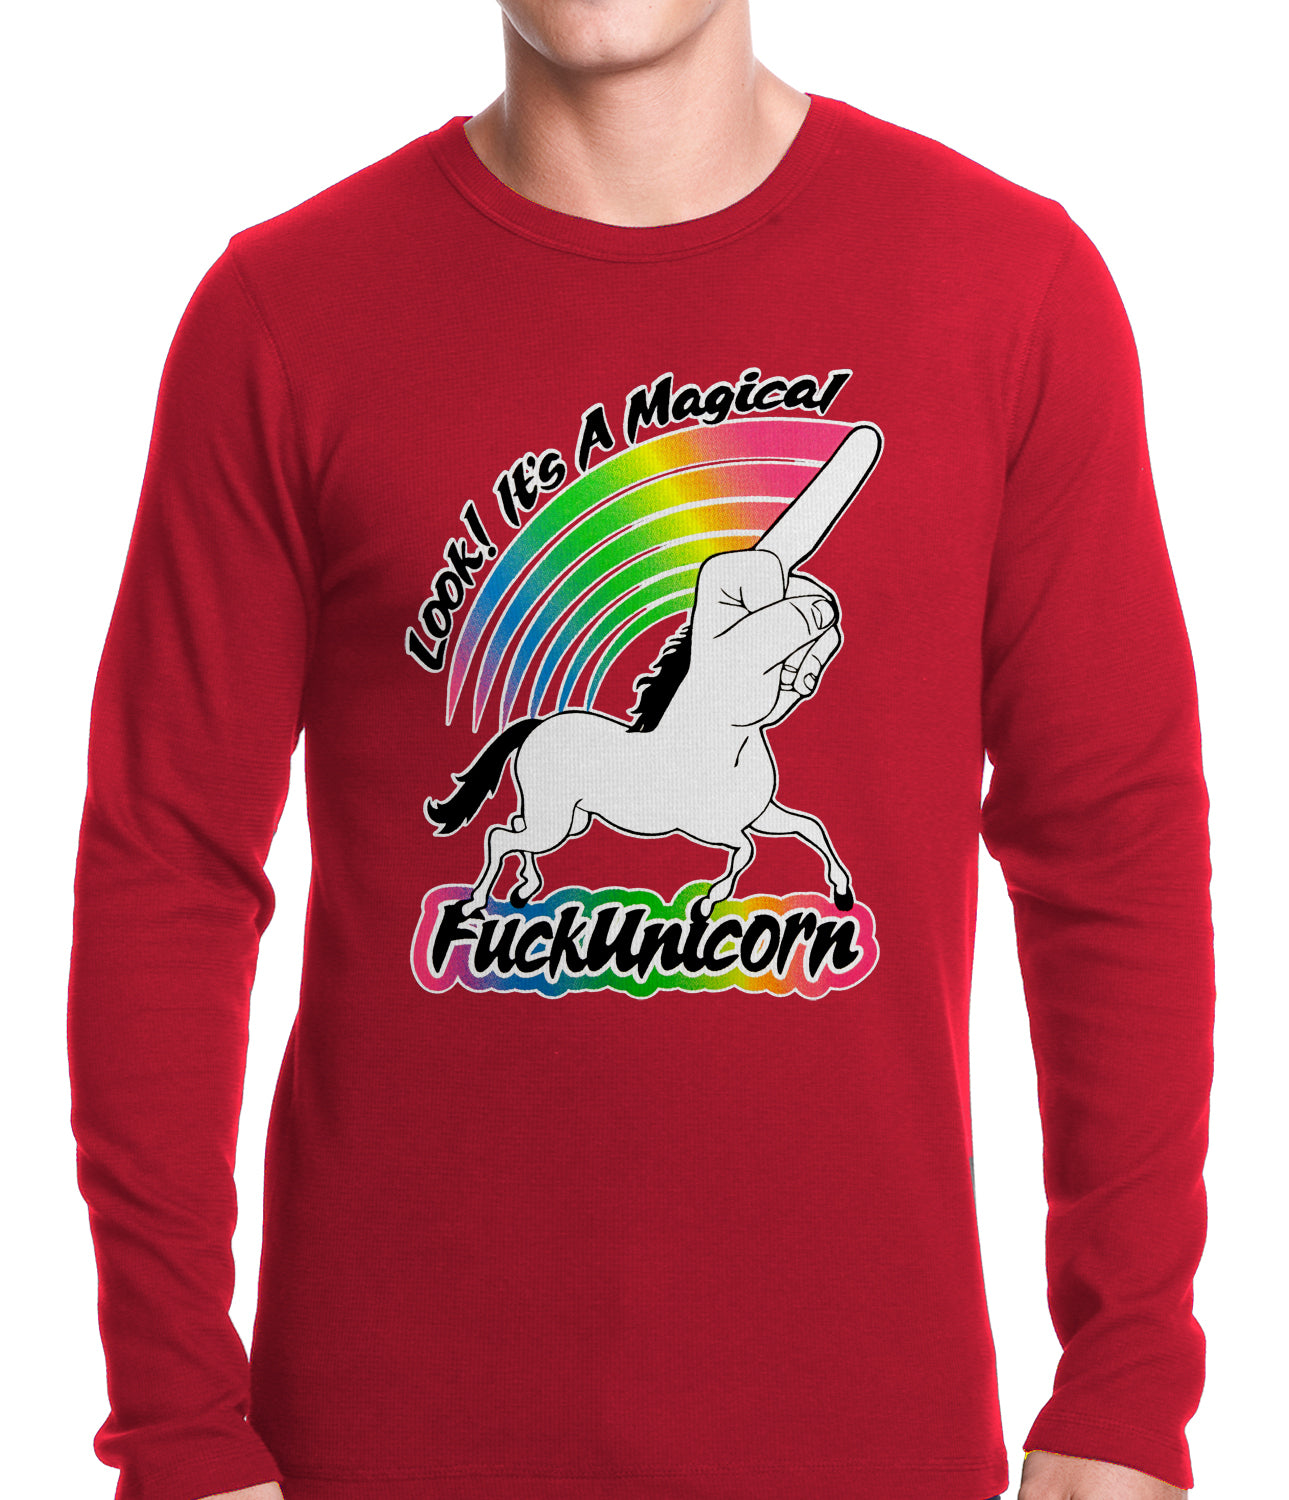 Look It's A Magical F*ckunicorn Funny Thermal Shirt